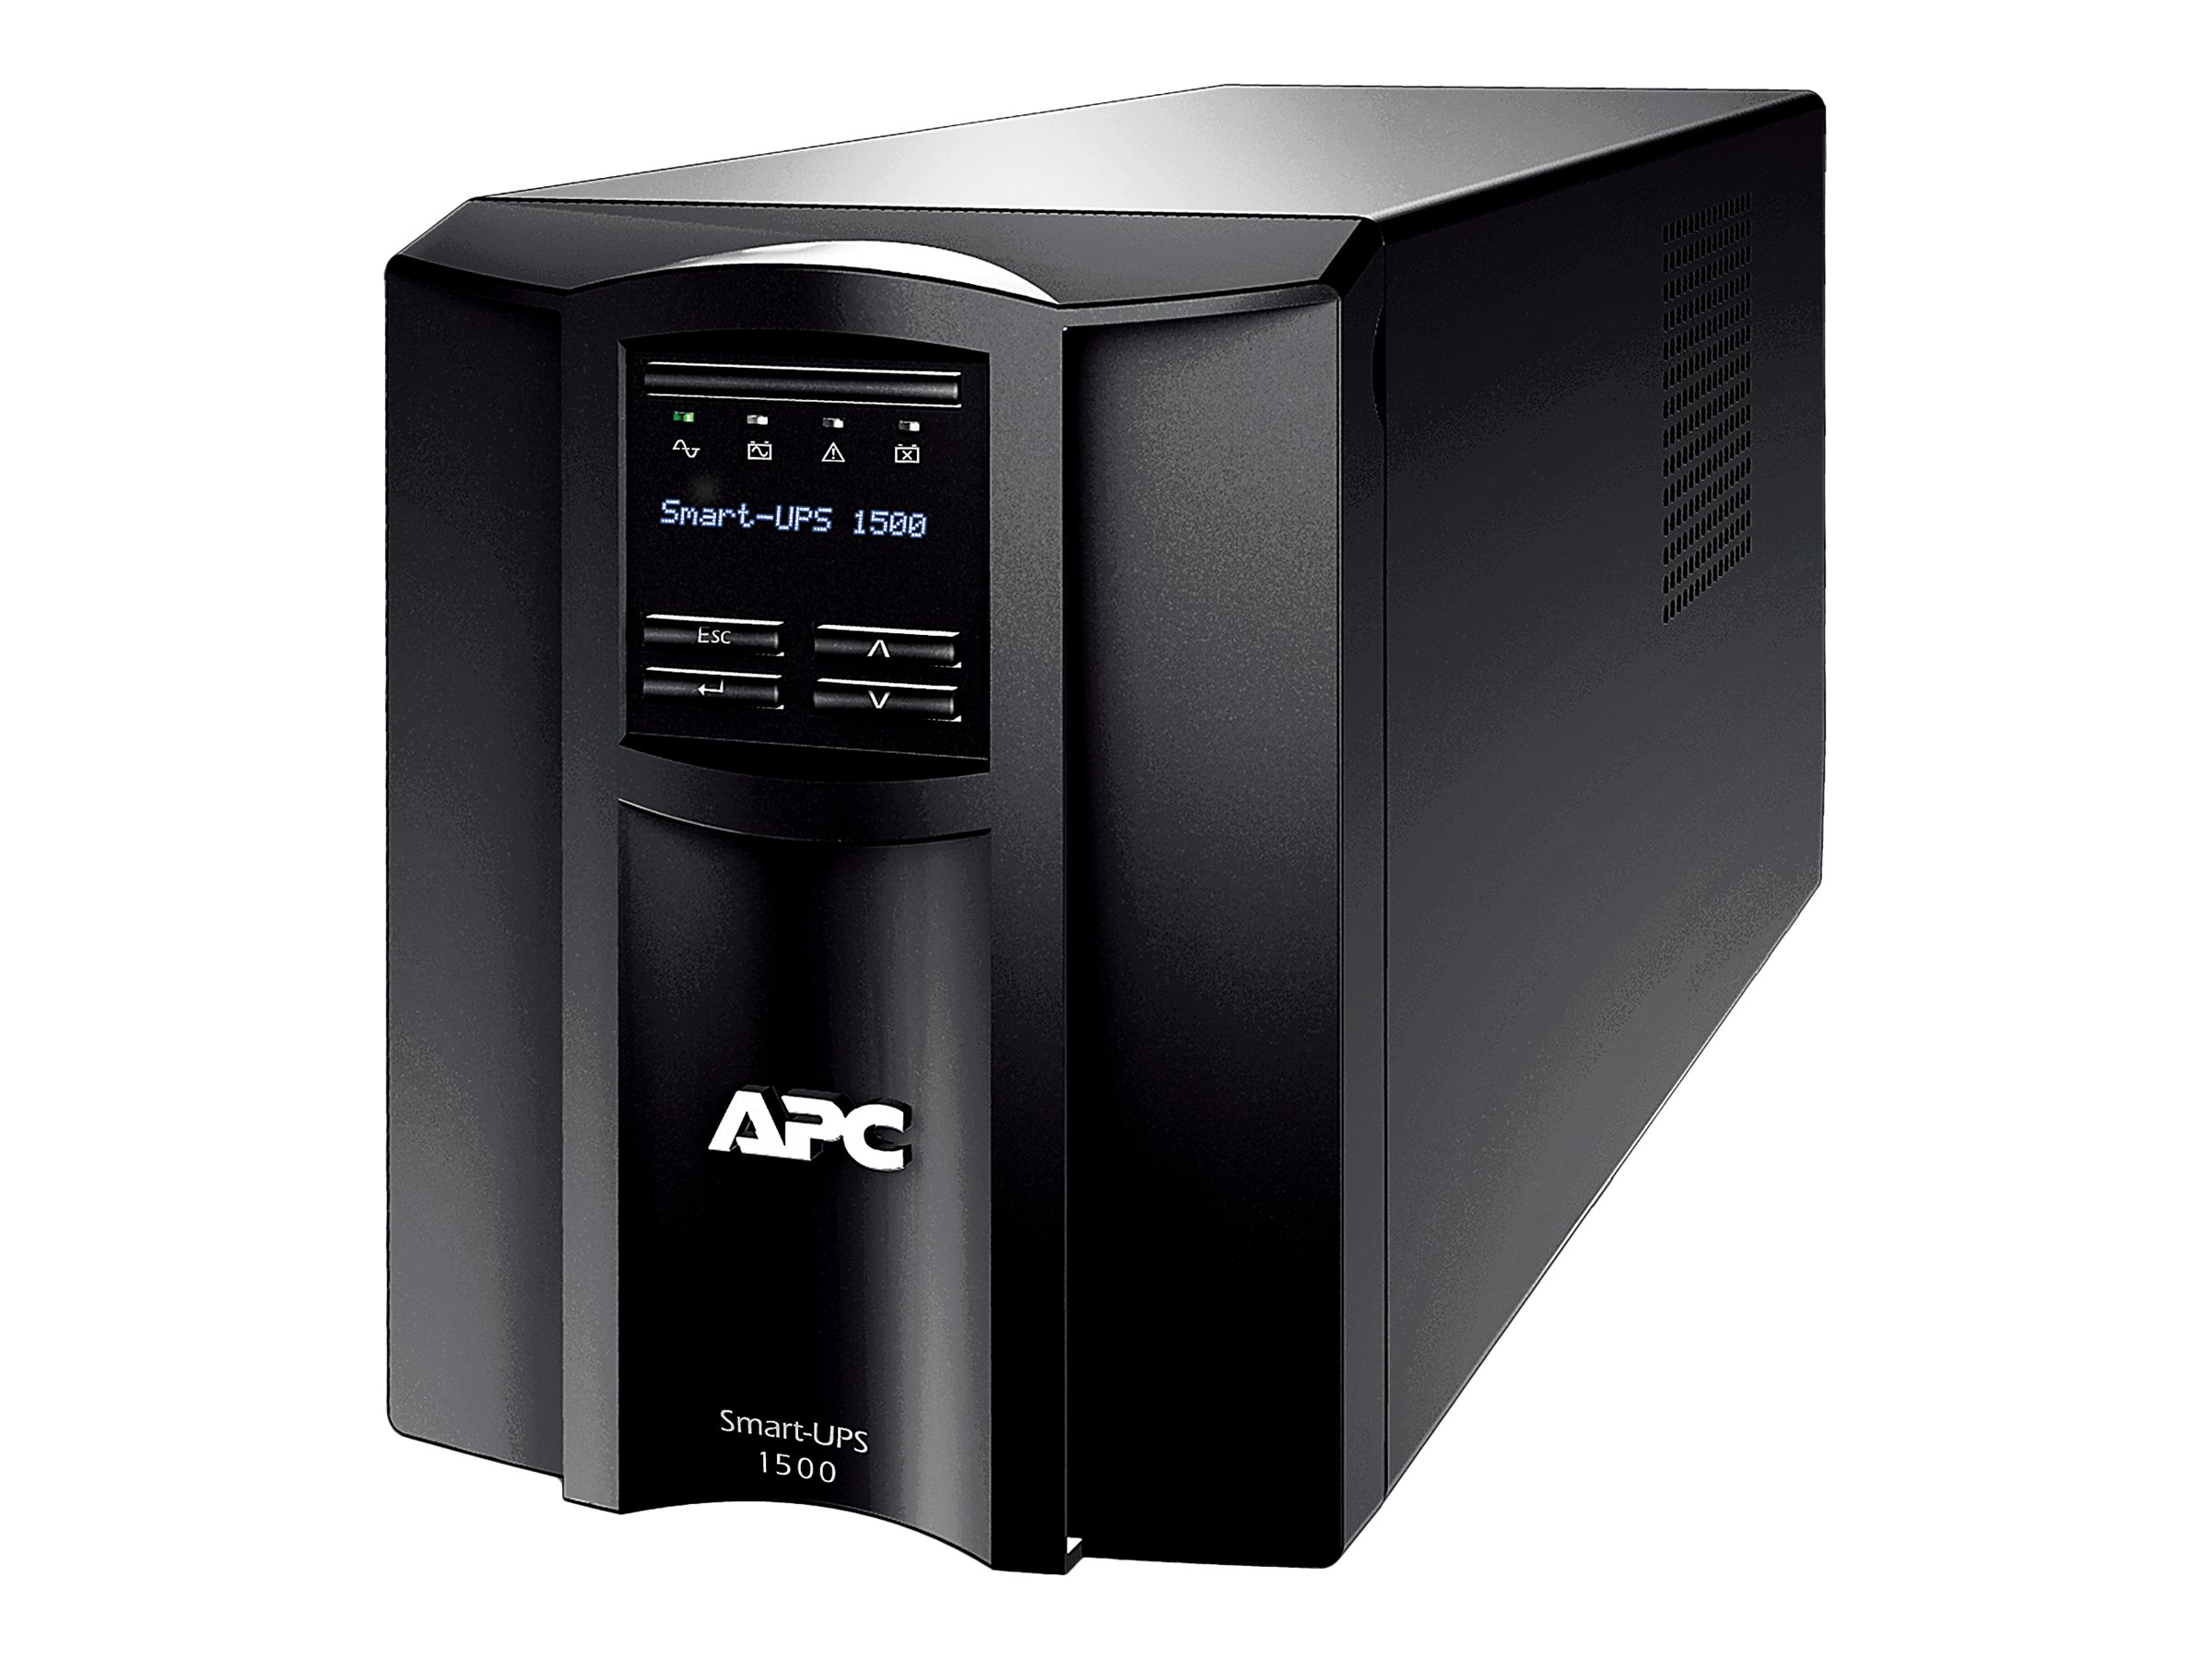 APC Smart-UPS 1500VA 980W 100V Line Interactive LCD Tower UPS (8) Outlets USB, Japan, SMT1500J